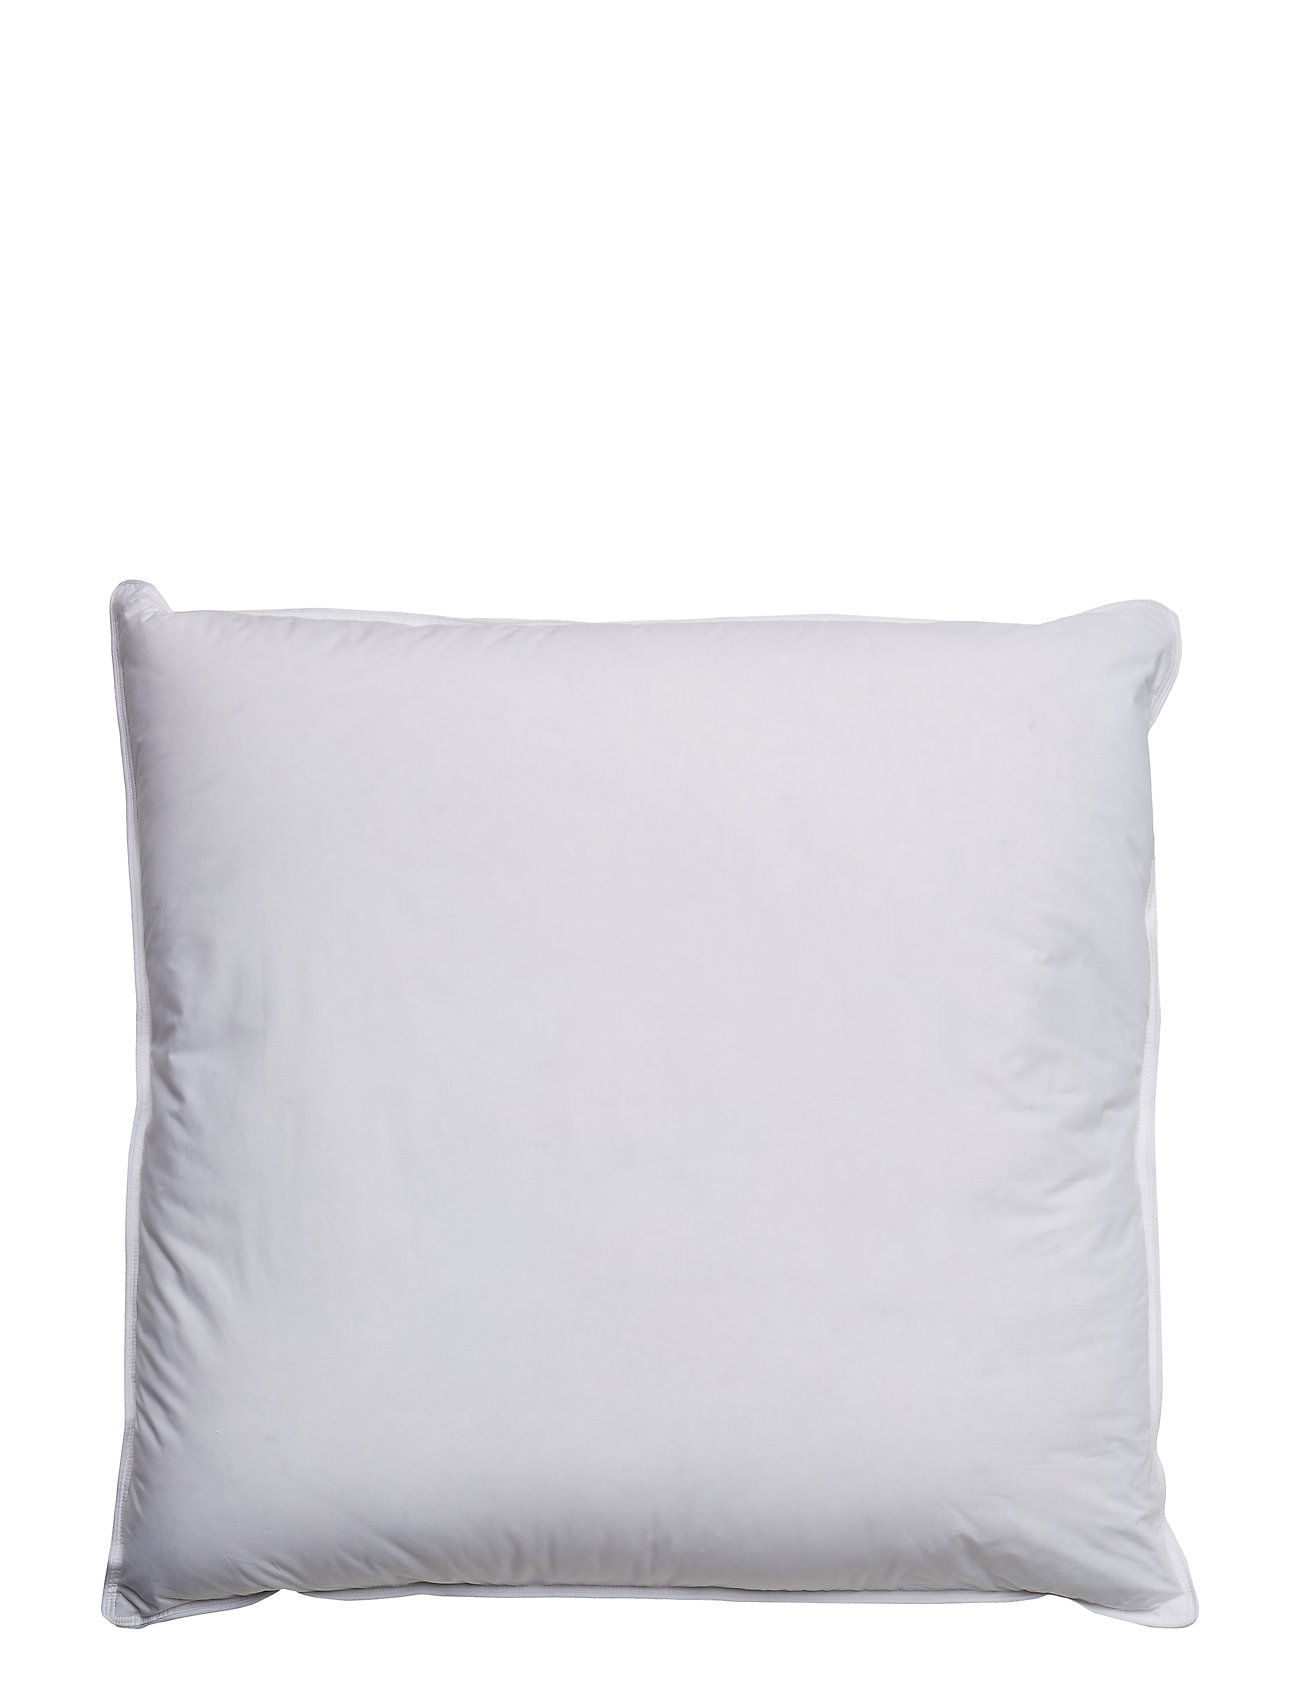 Quilts of Denmark Nænsom High  3 chamber pillow - WHITE